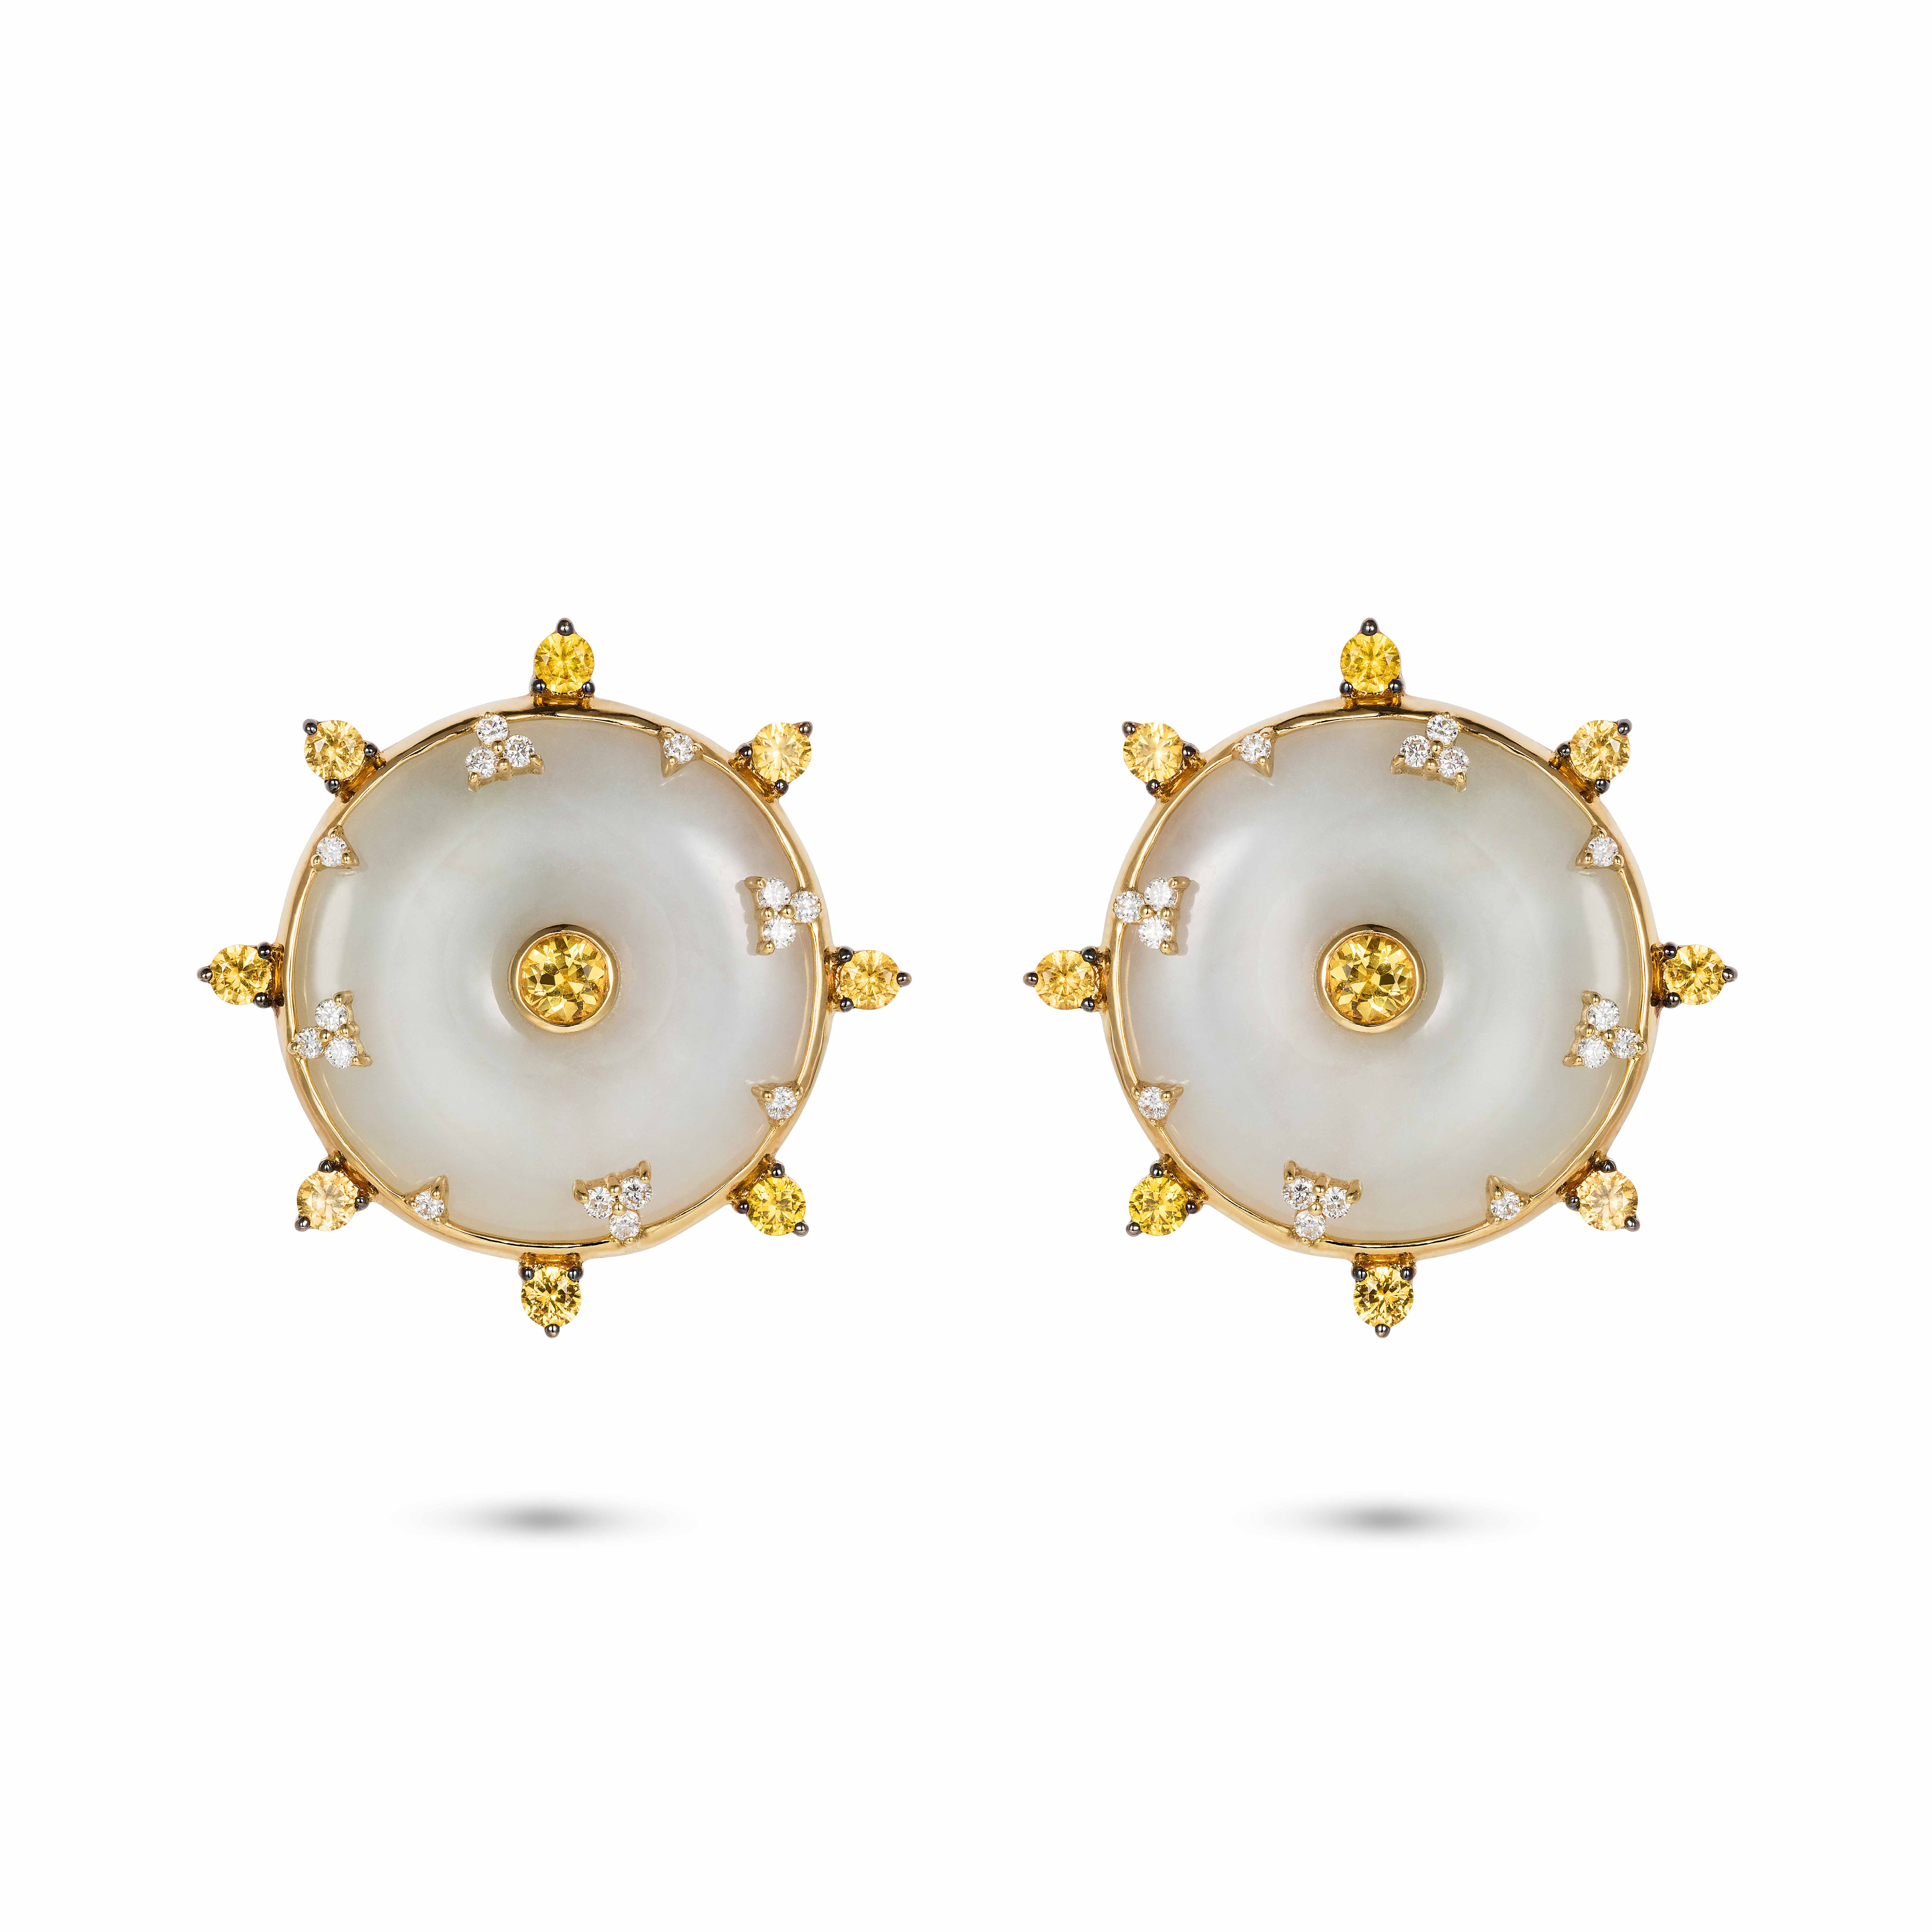 Celeste Yellow Sapphire and Jade Studs by Nadine Aysoy on curated-crowd.com